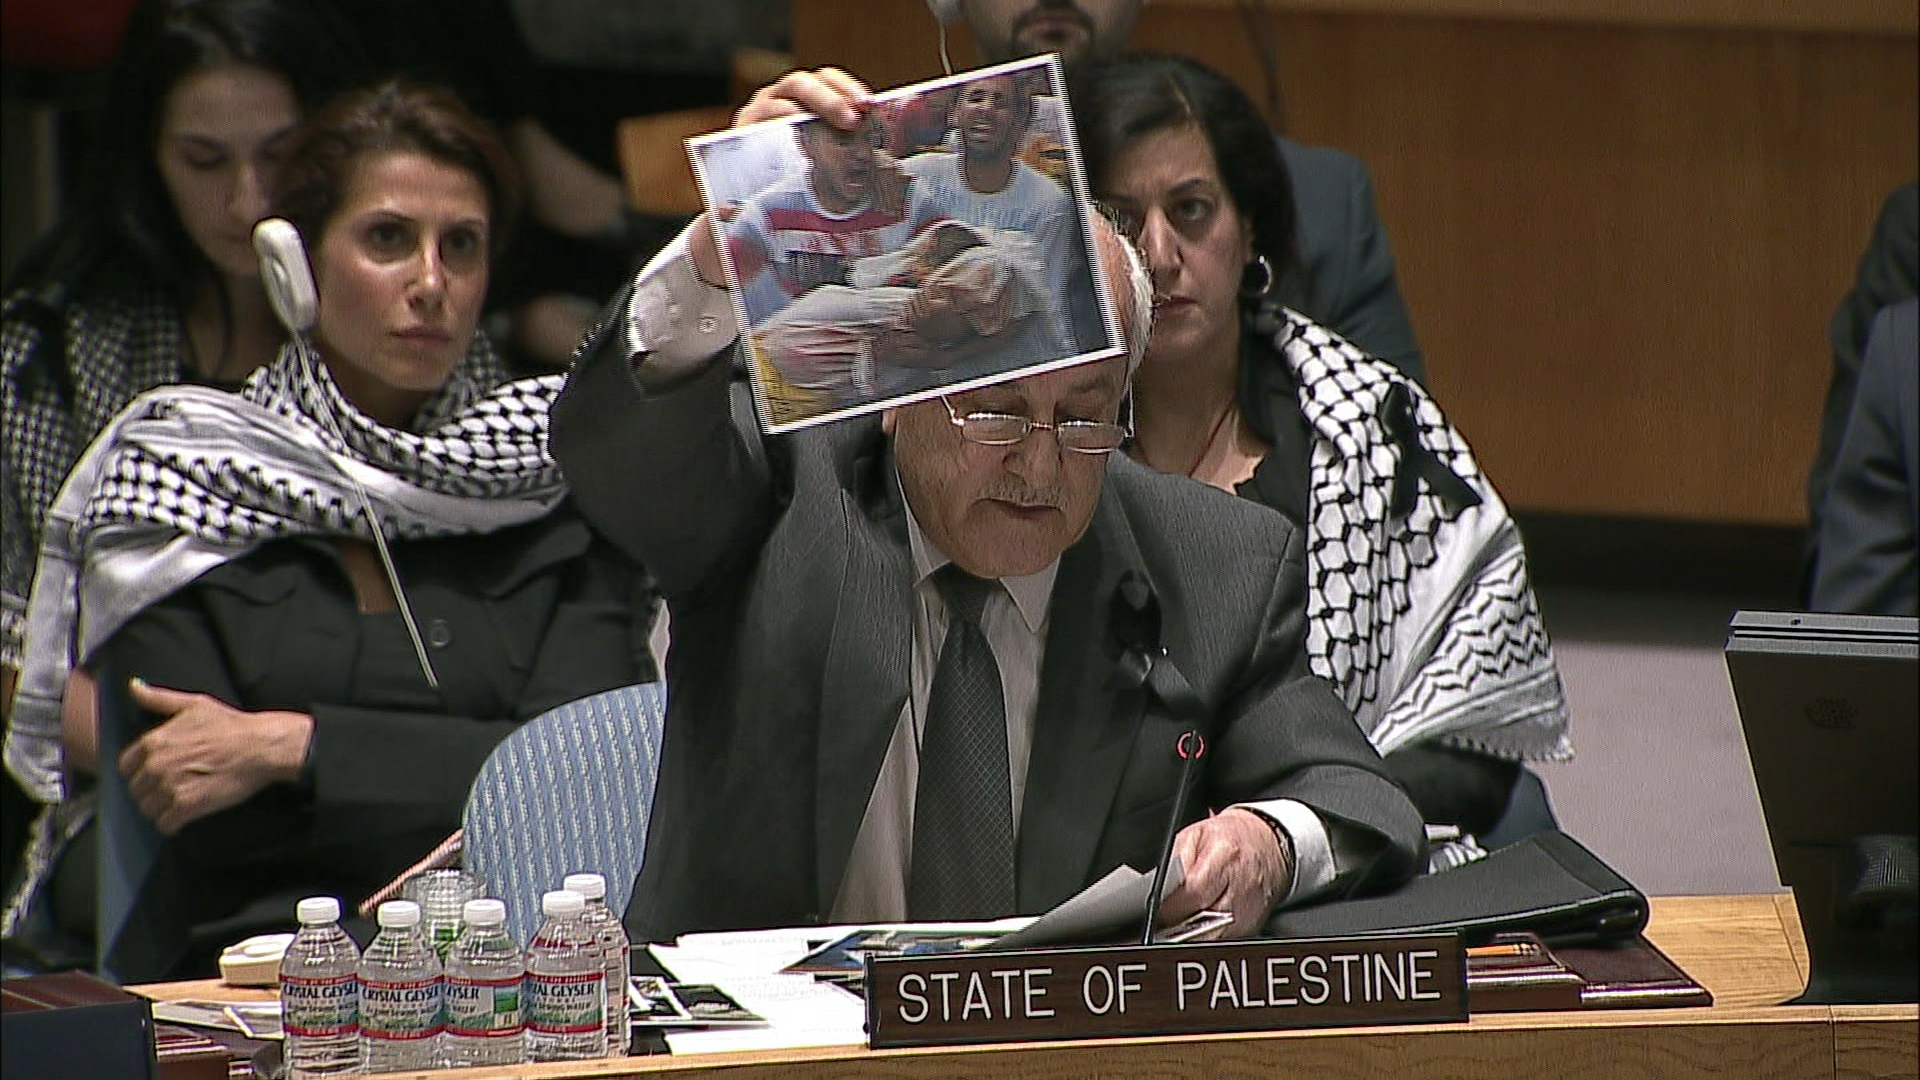 Selected frame from video story UN / ISRAEL PALESTINE CONFLICT